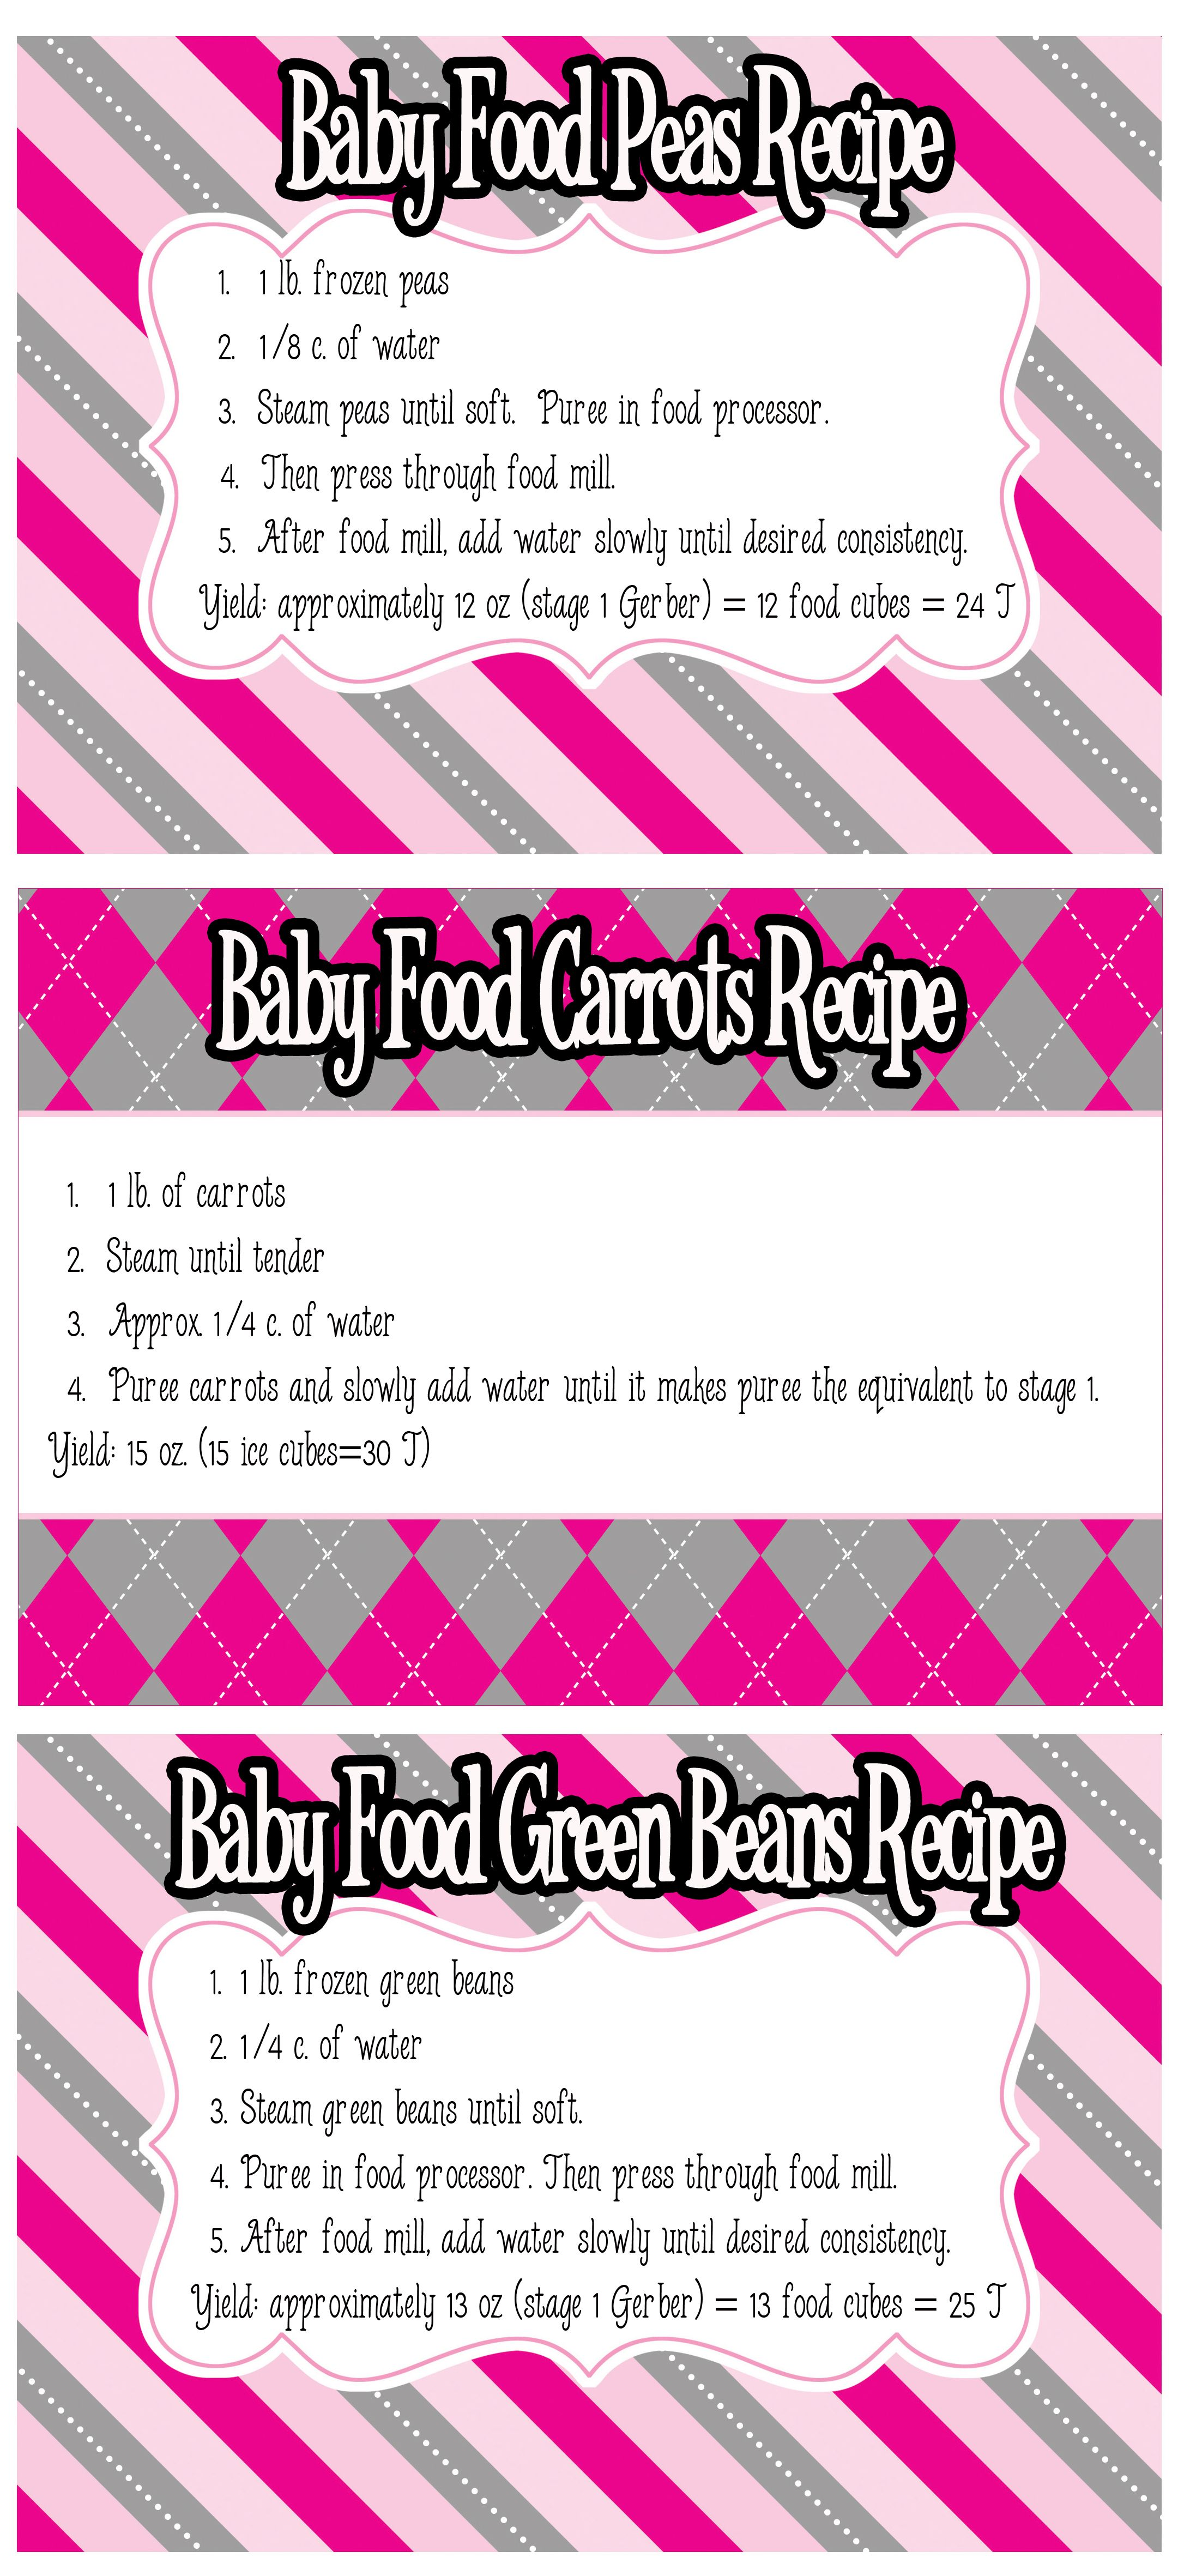 Baby food recipe cards peas carrots and green beans jack jenkins baby food recipe cards peas carrots and green beans forumfinder Gallery